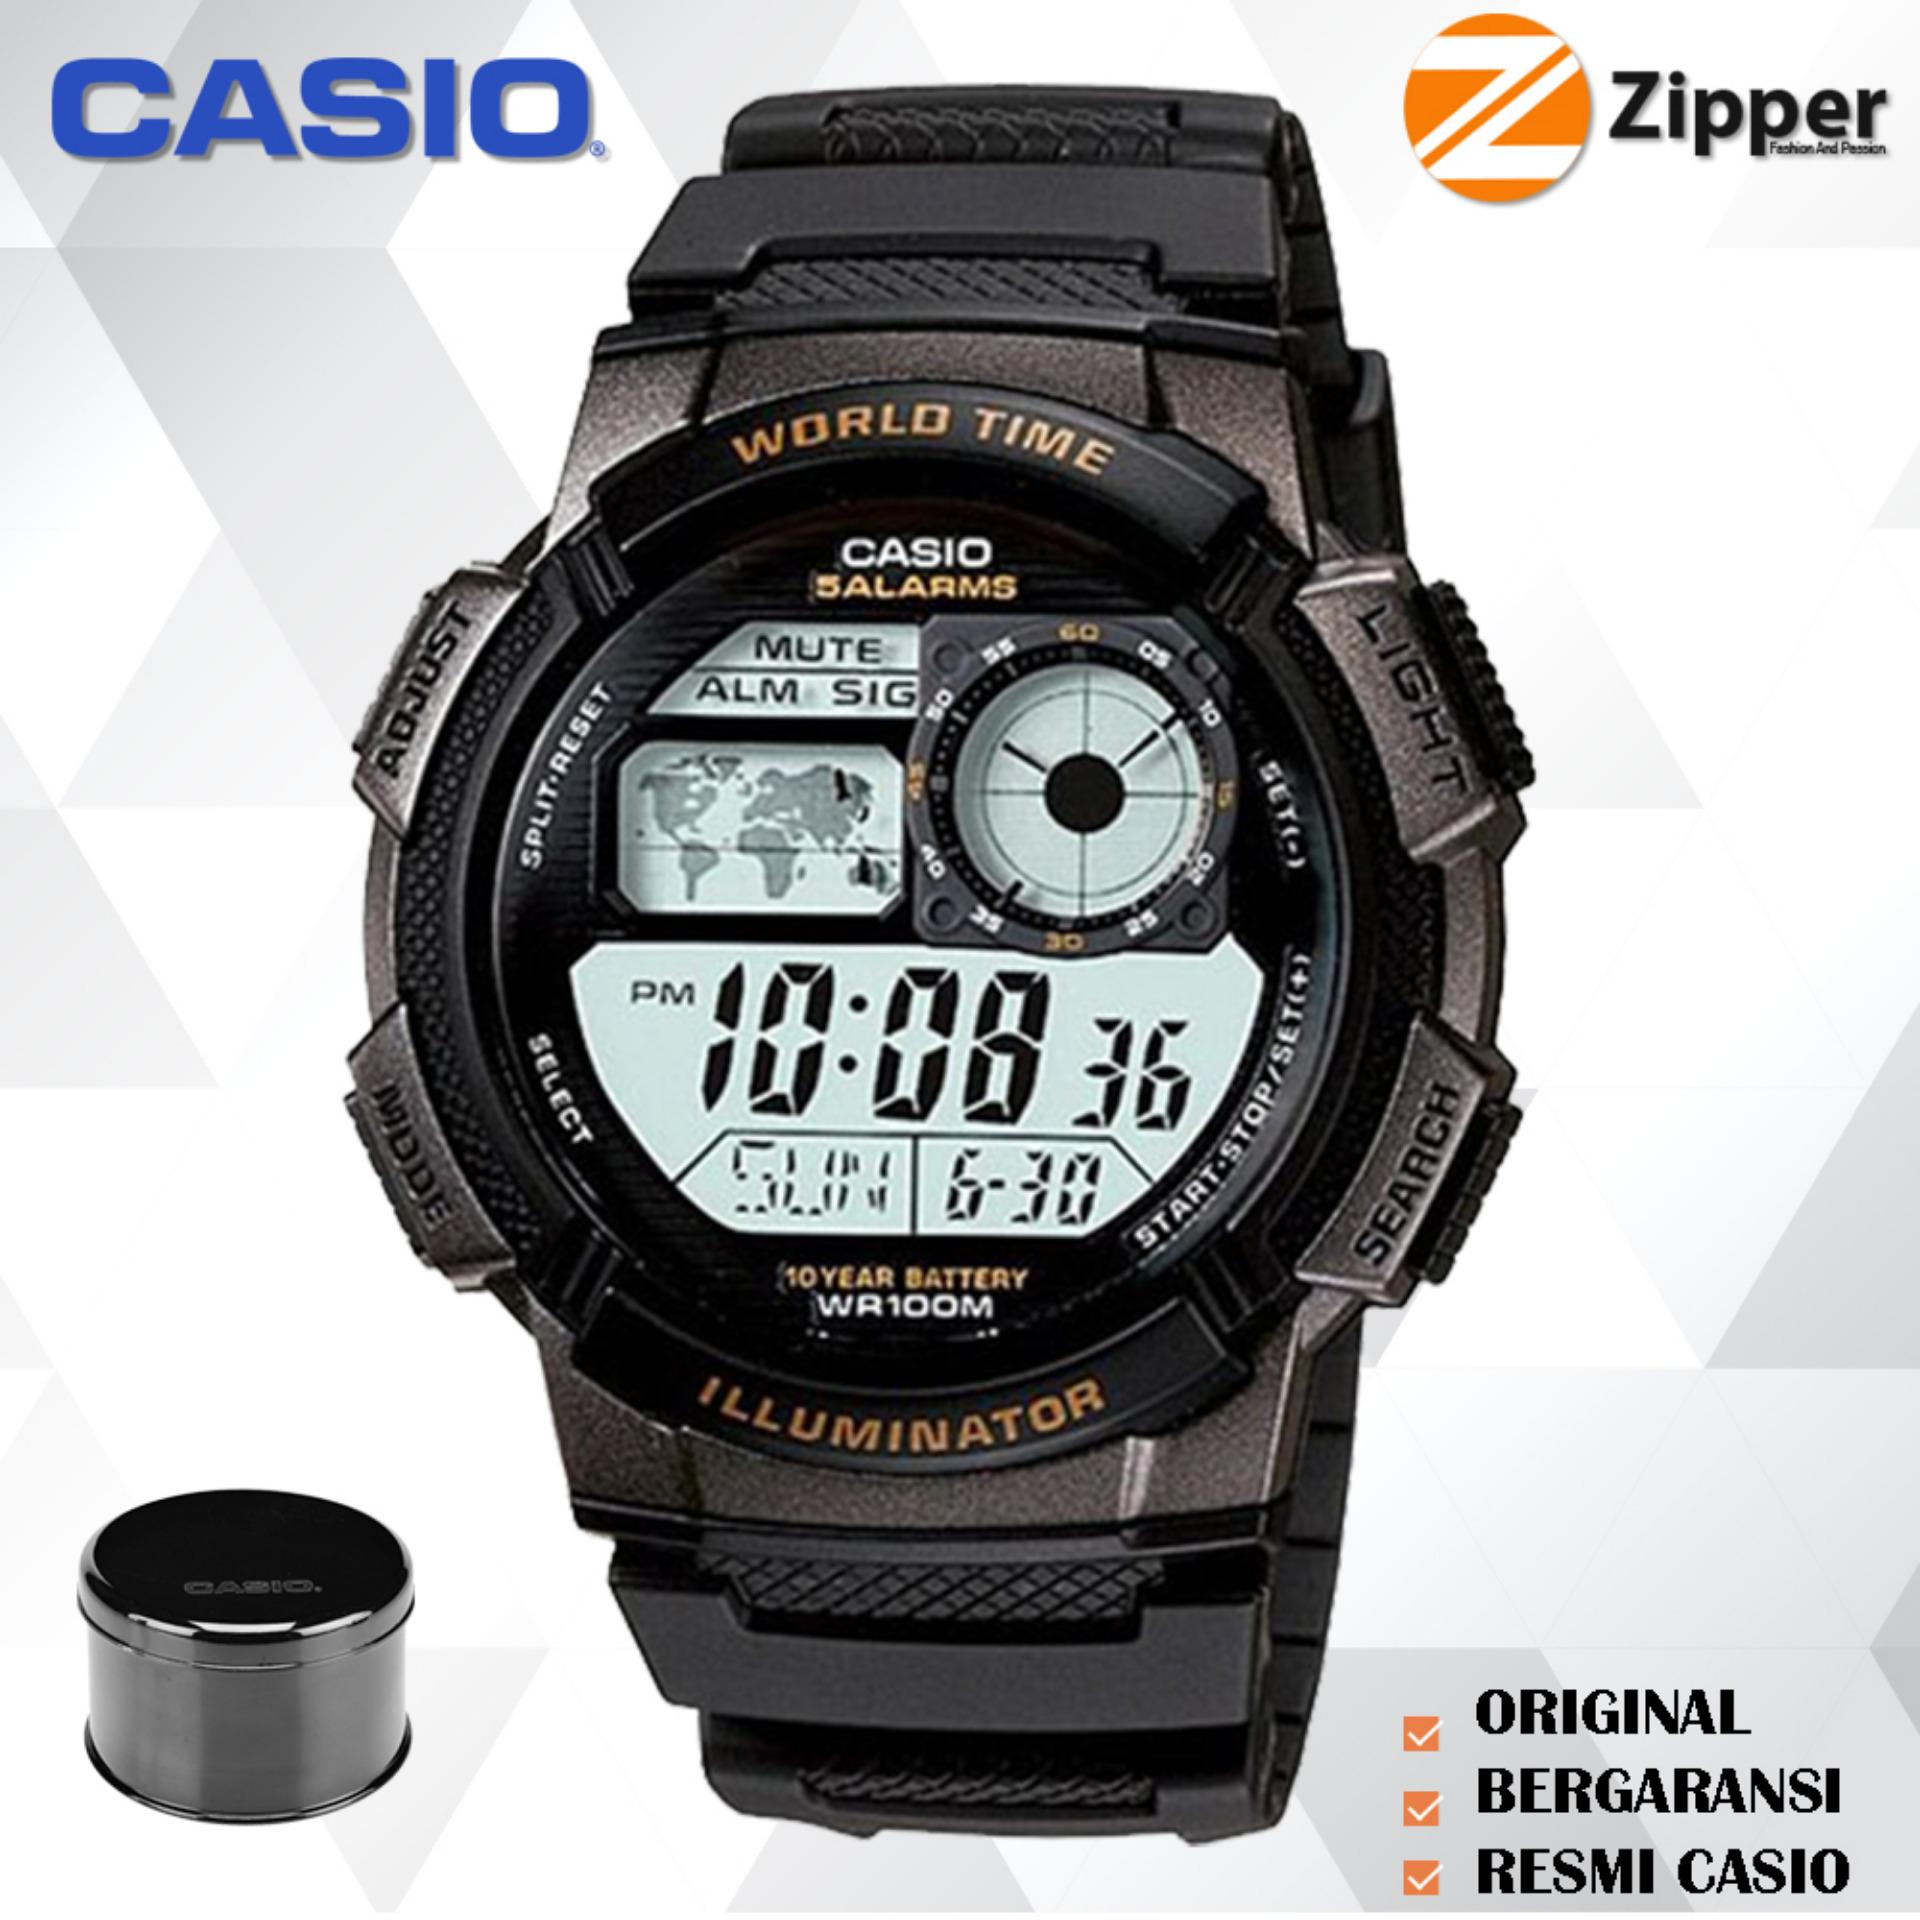 Casio Jam Tangan Digital Men and Women Spesial AE-1000W Youth Series - Tali Karet PROMO